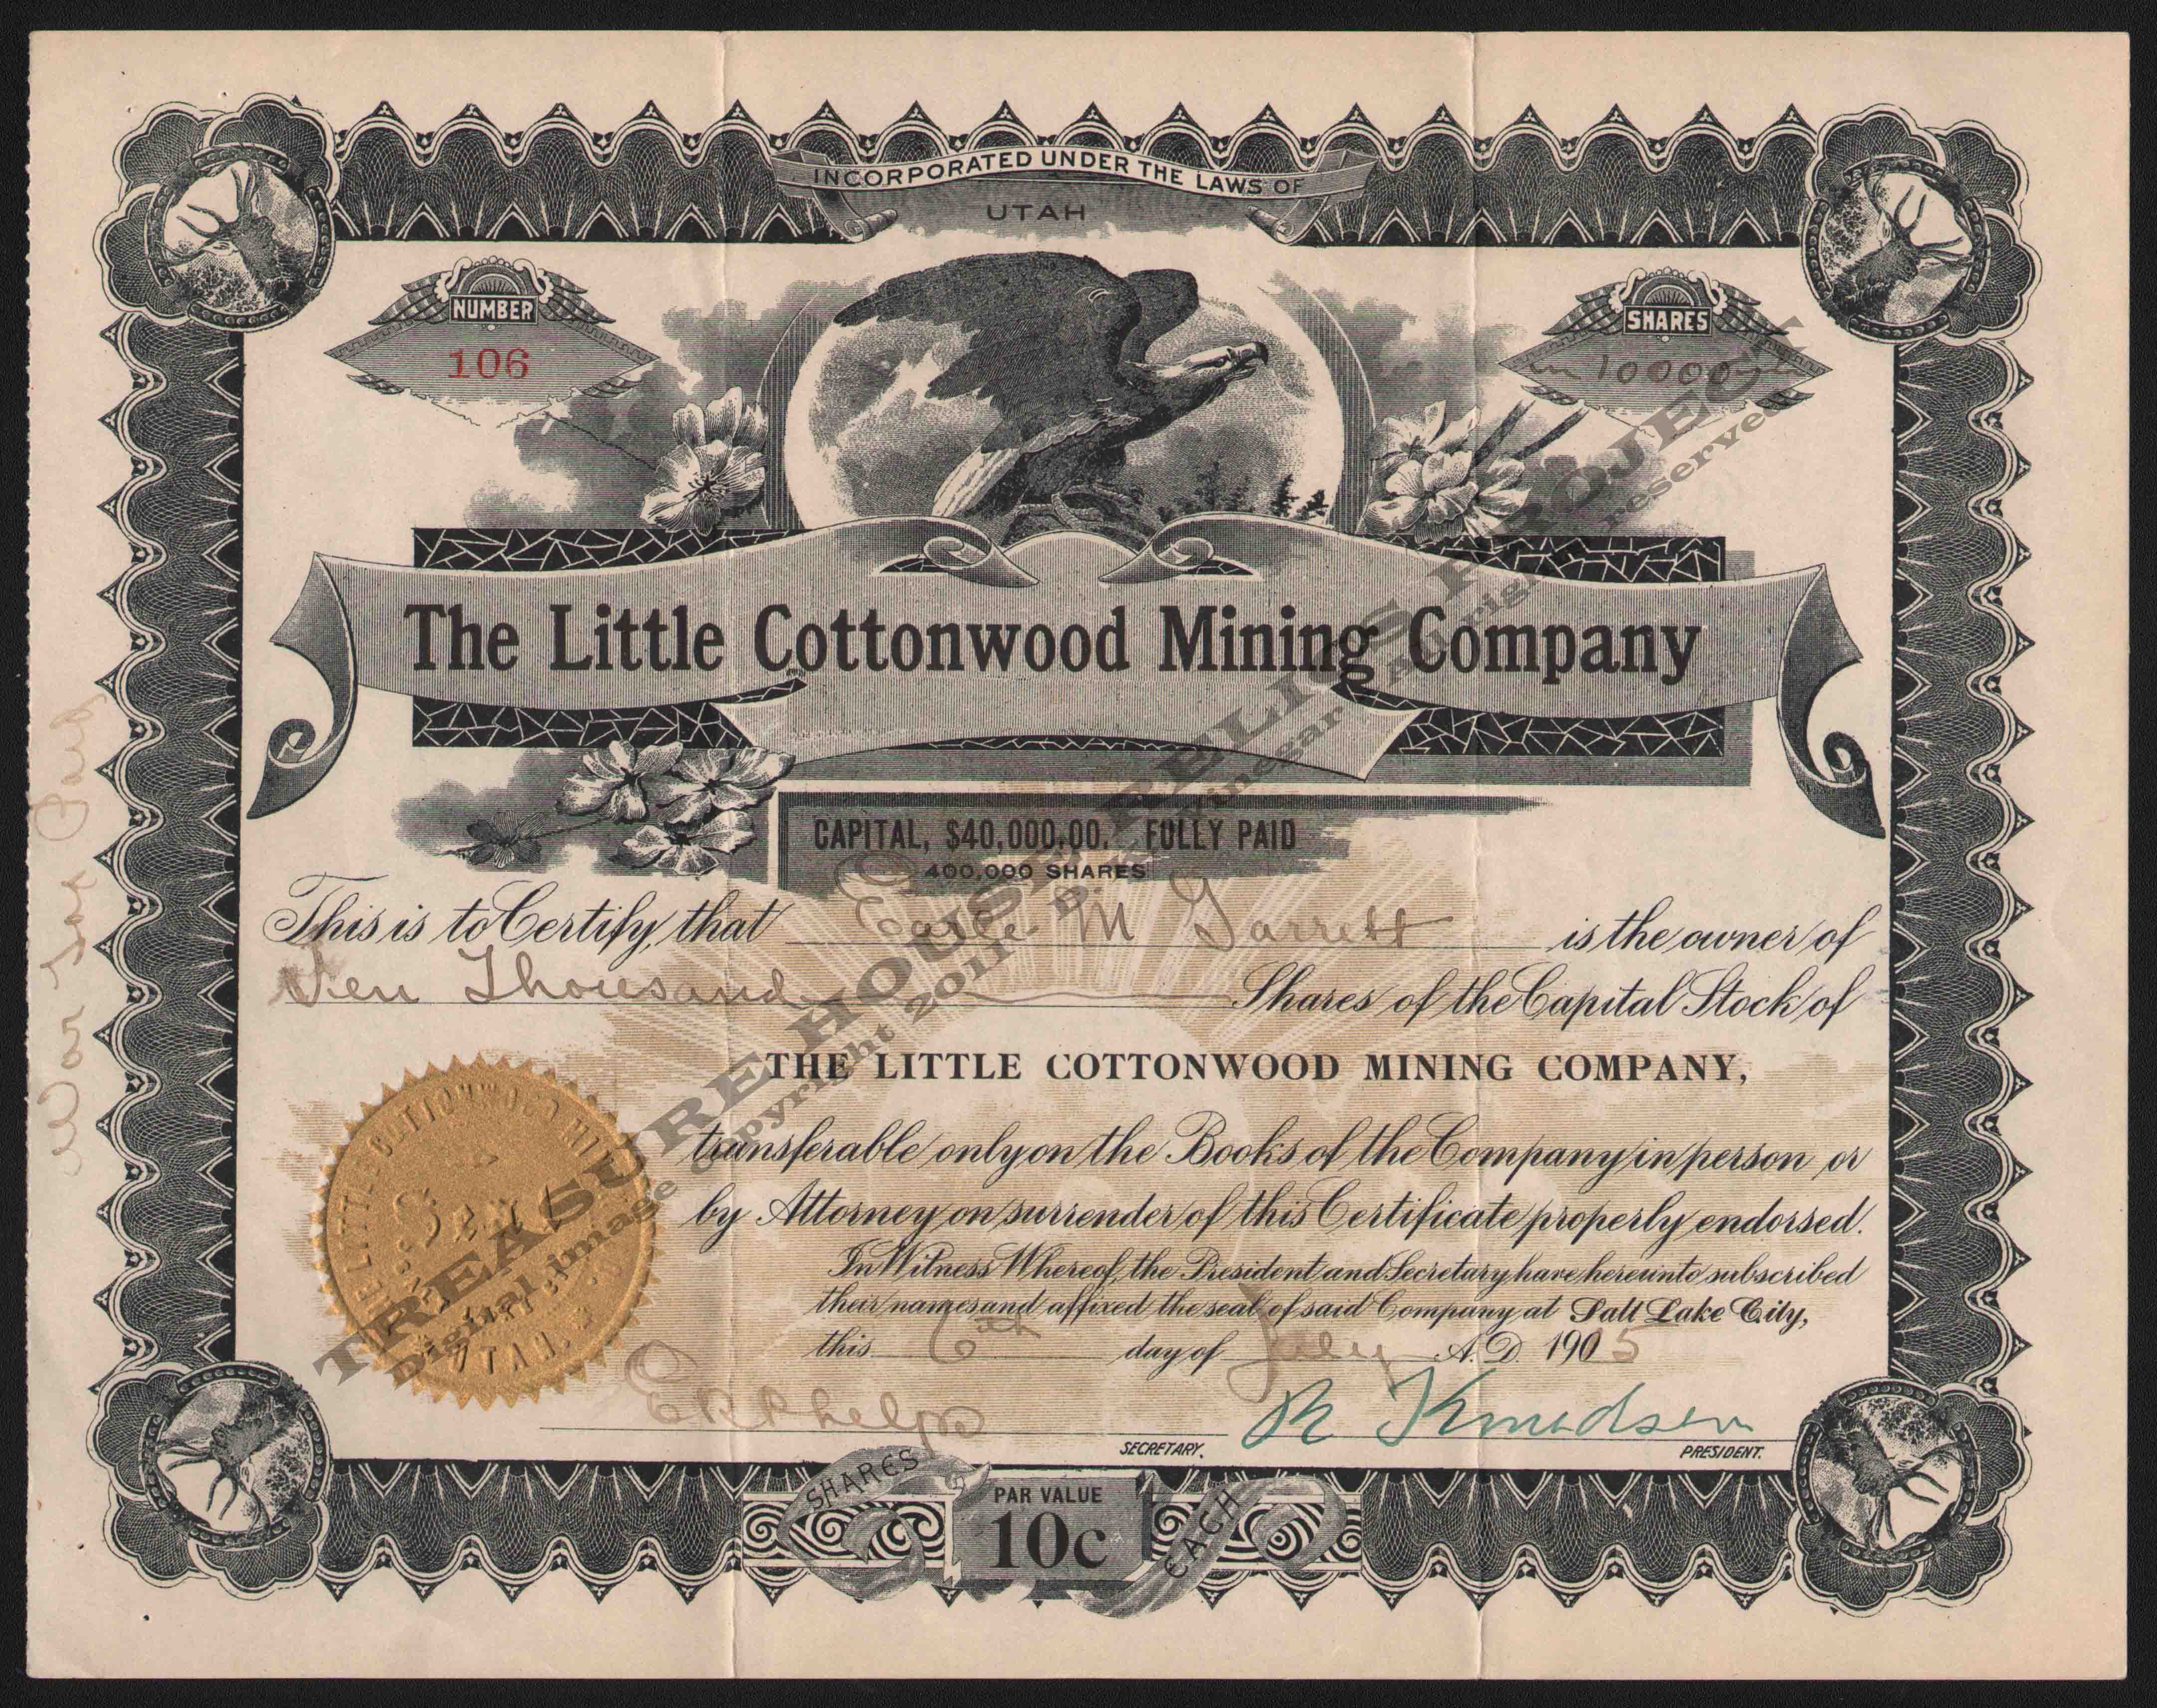 LITTLE_COTTOONWOOD_MINING_COMPANY_106_1905_400_emboss.jpg